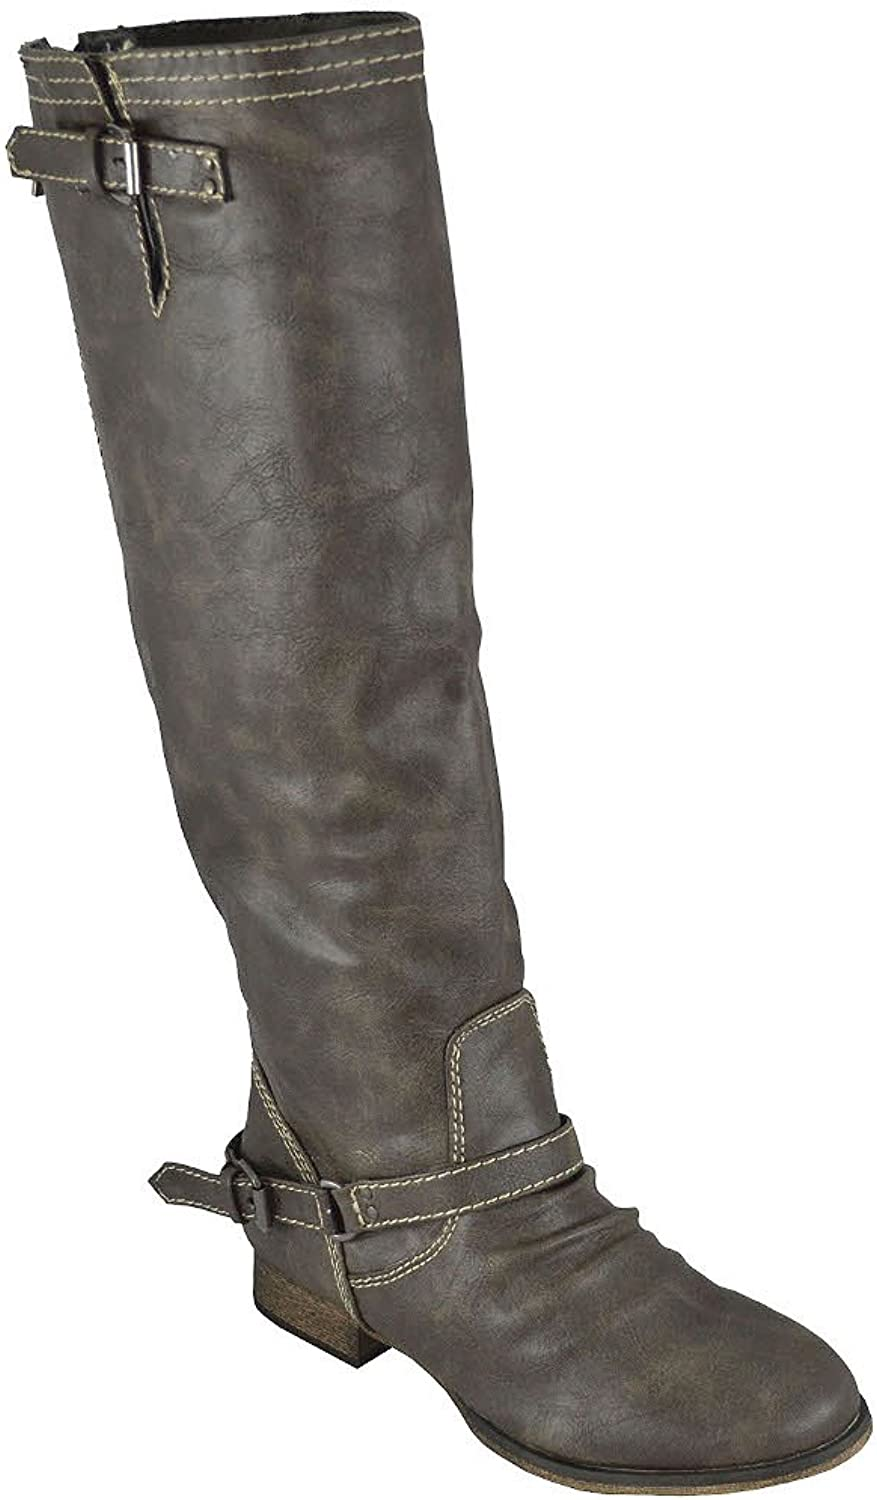 Breckelles Womens Outlaw-91 Knee High Riding Boot